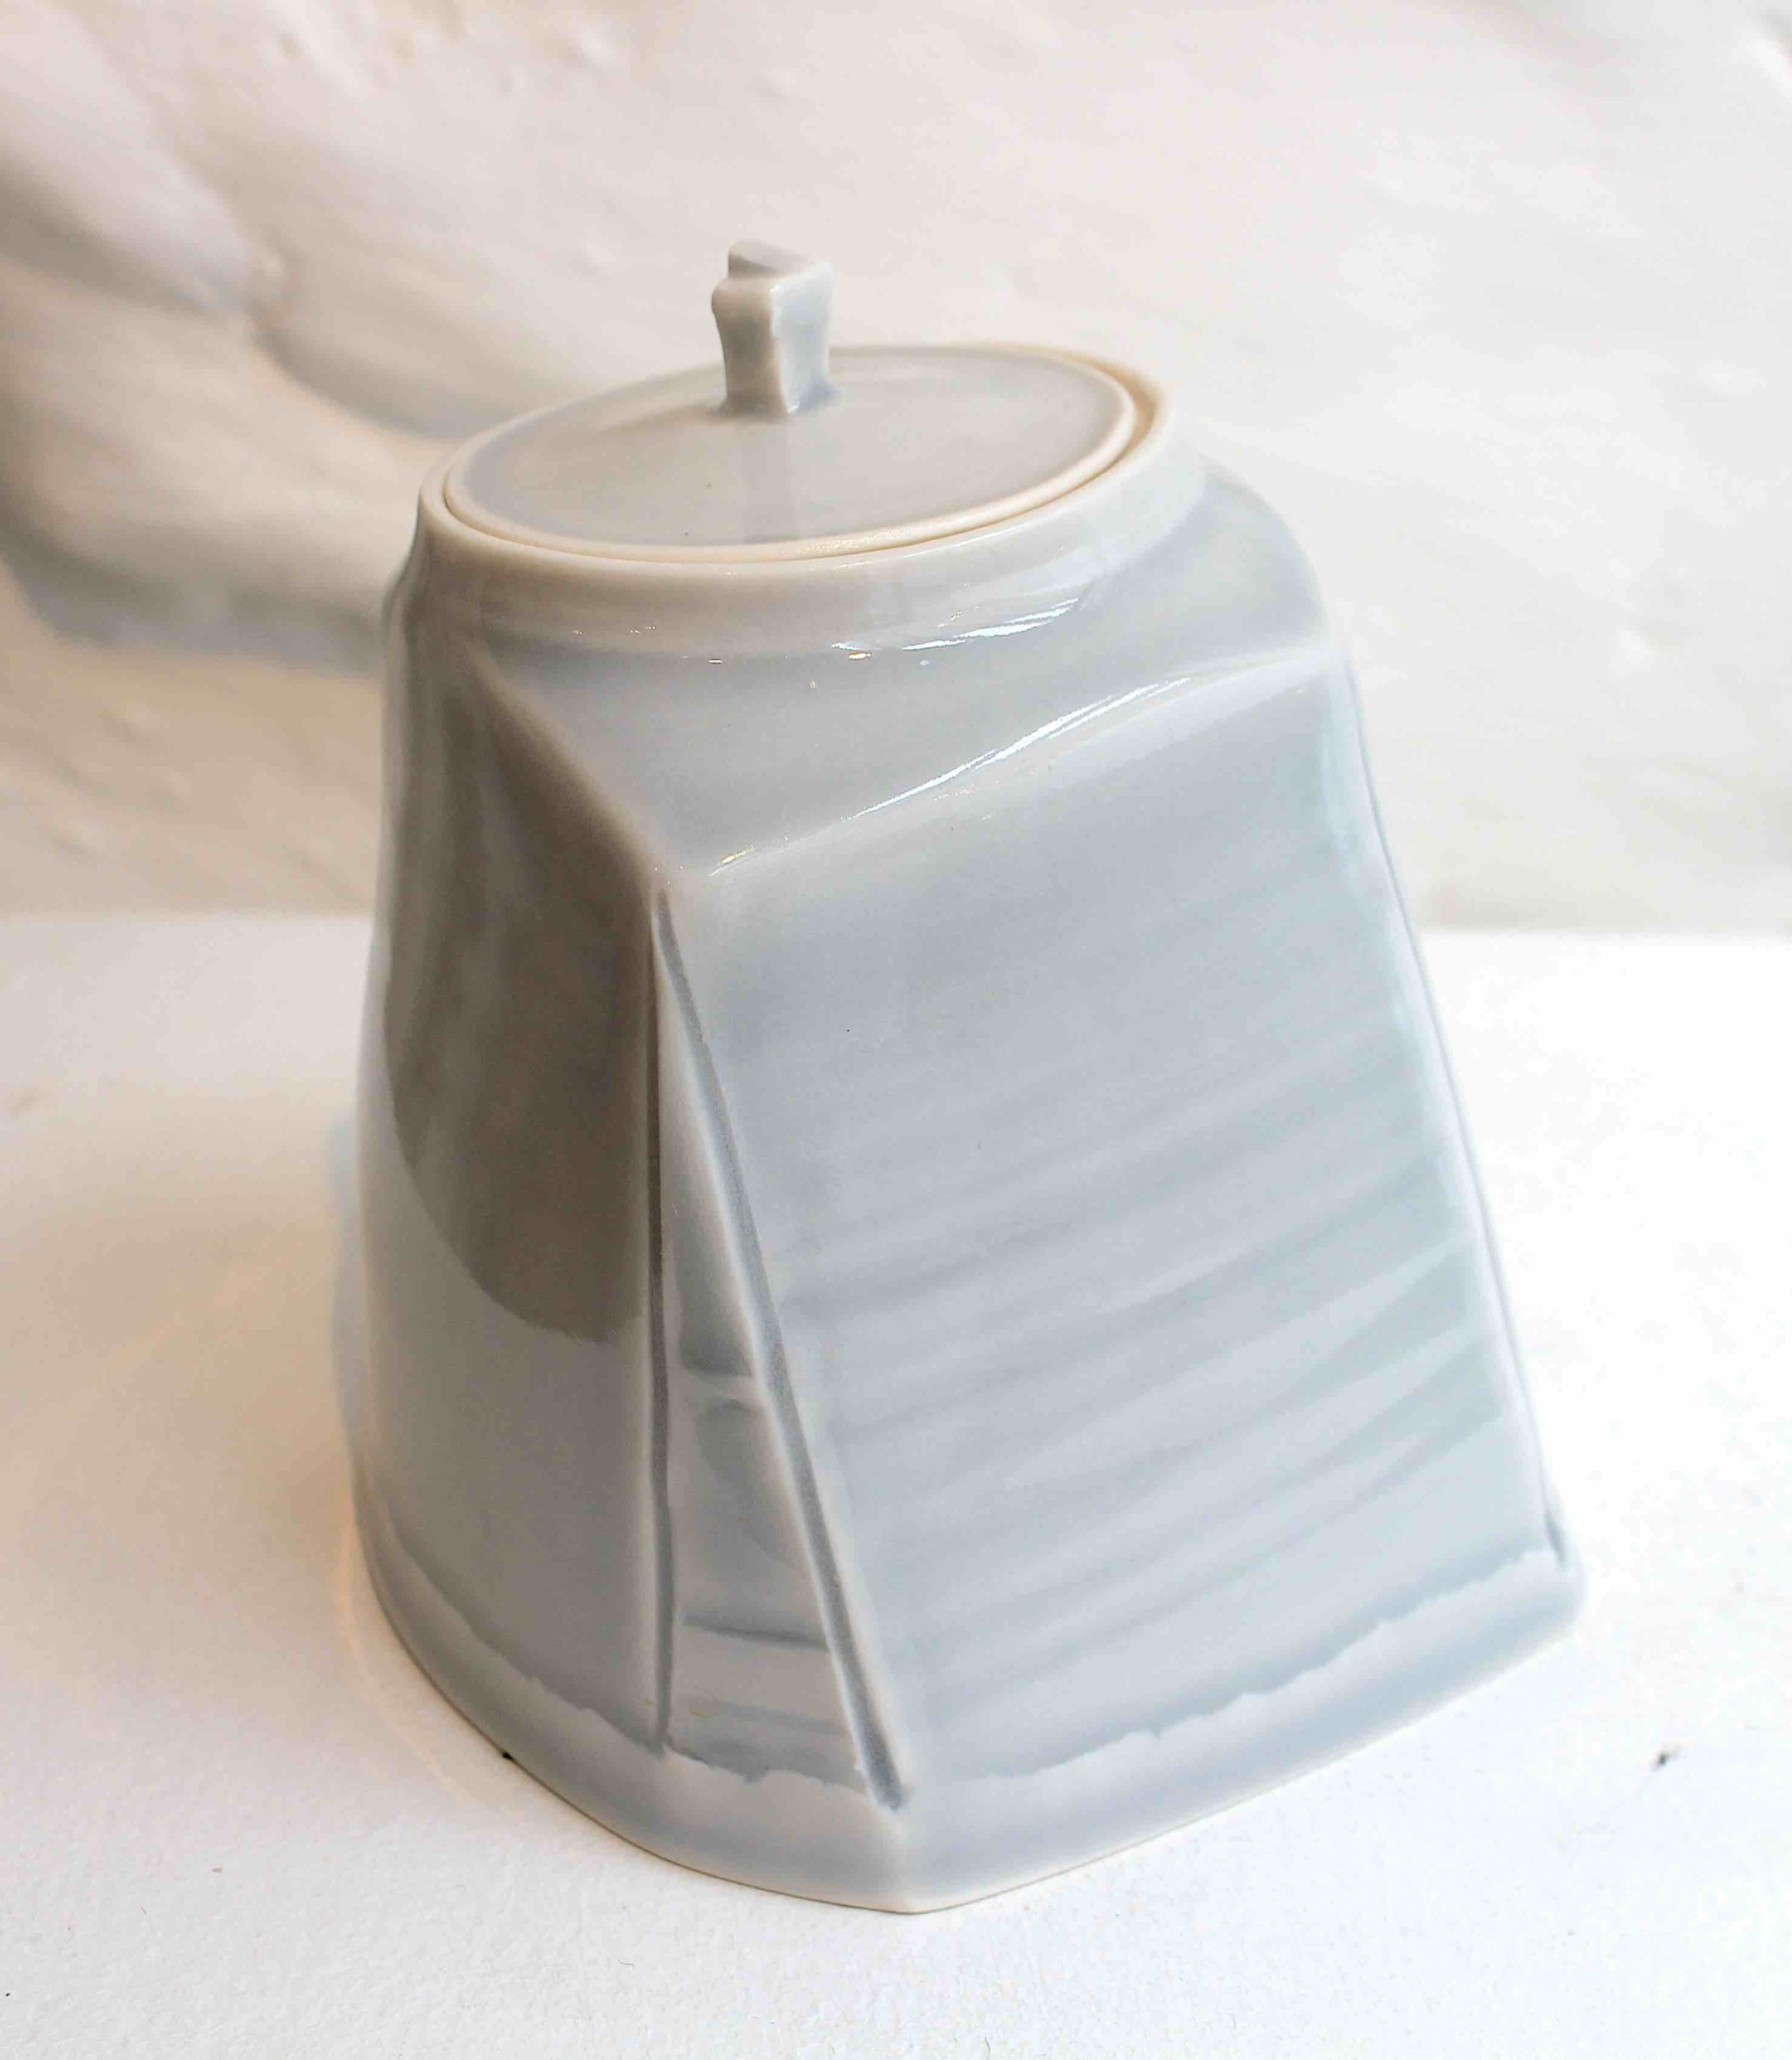 "<span class=""link fancybox-details-link""><a href=""/artists/99-carina-ciscato/works/5765-carina-ciscato-pale-grey-blue-lidded-pot-2018/"">View Detail Page</a></span><div class=""artist""><strong>Carina Ciscato</strong></div> <div class=""title""><em>Pale Grey/Blue Lidded Pot</em>, 2018</div> <div class=""signed_and_dated"">porcelain</div> <div class=""medium"">porcelain</div> <div class=""dimensions"">12 x 10 cm<br /> 4 3/4 x 4 inches</div><div class=""price"">£350.00</div><div class=""copyright_line"">OwnArt: £35 x 10 Months, 0% APR</div>"